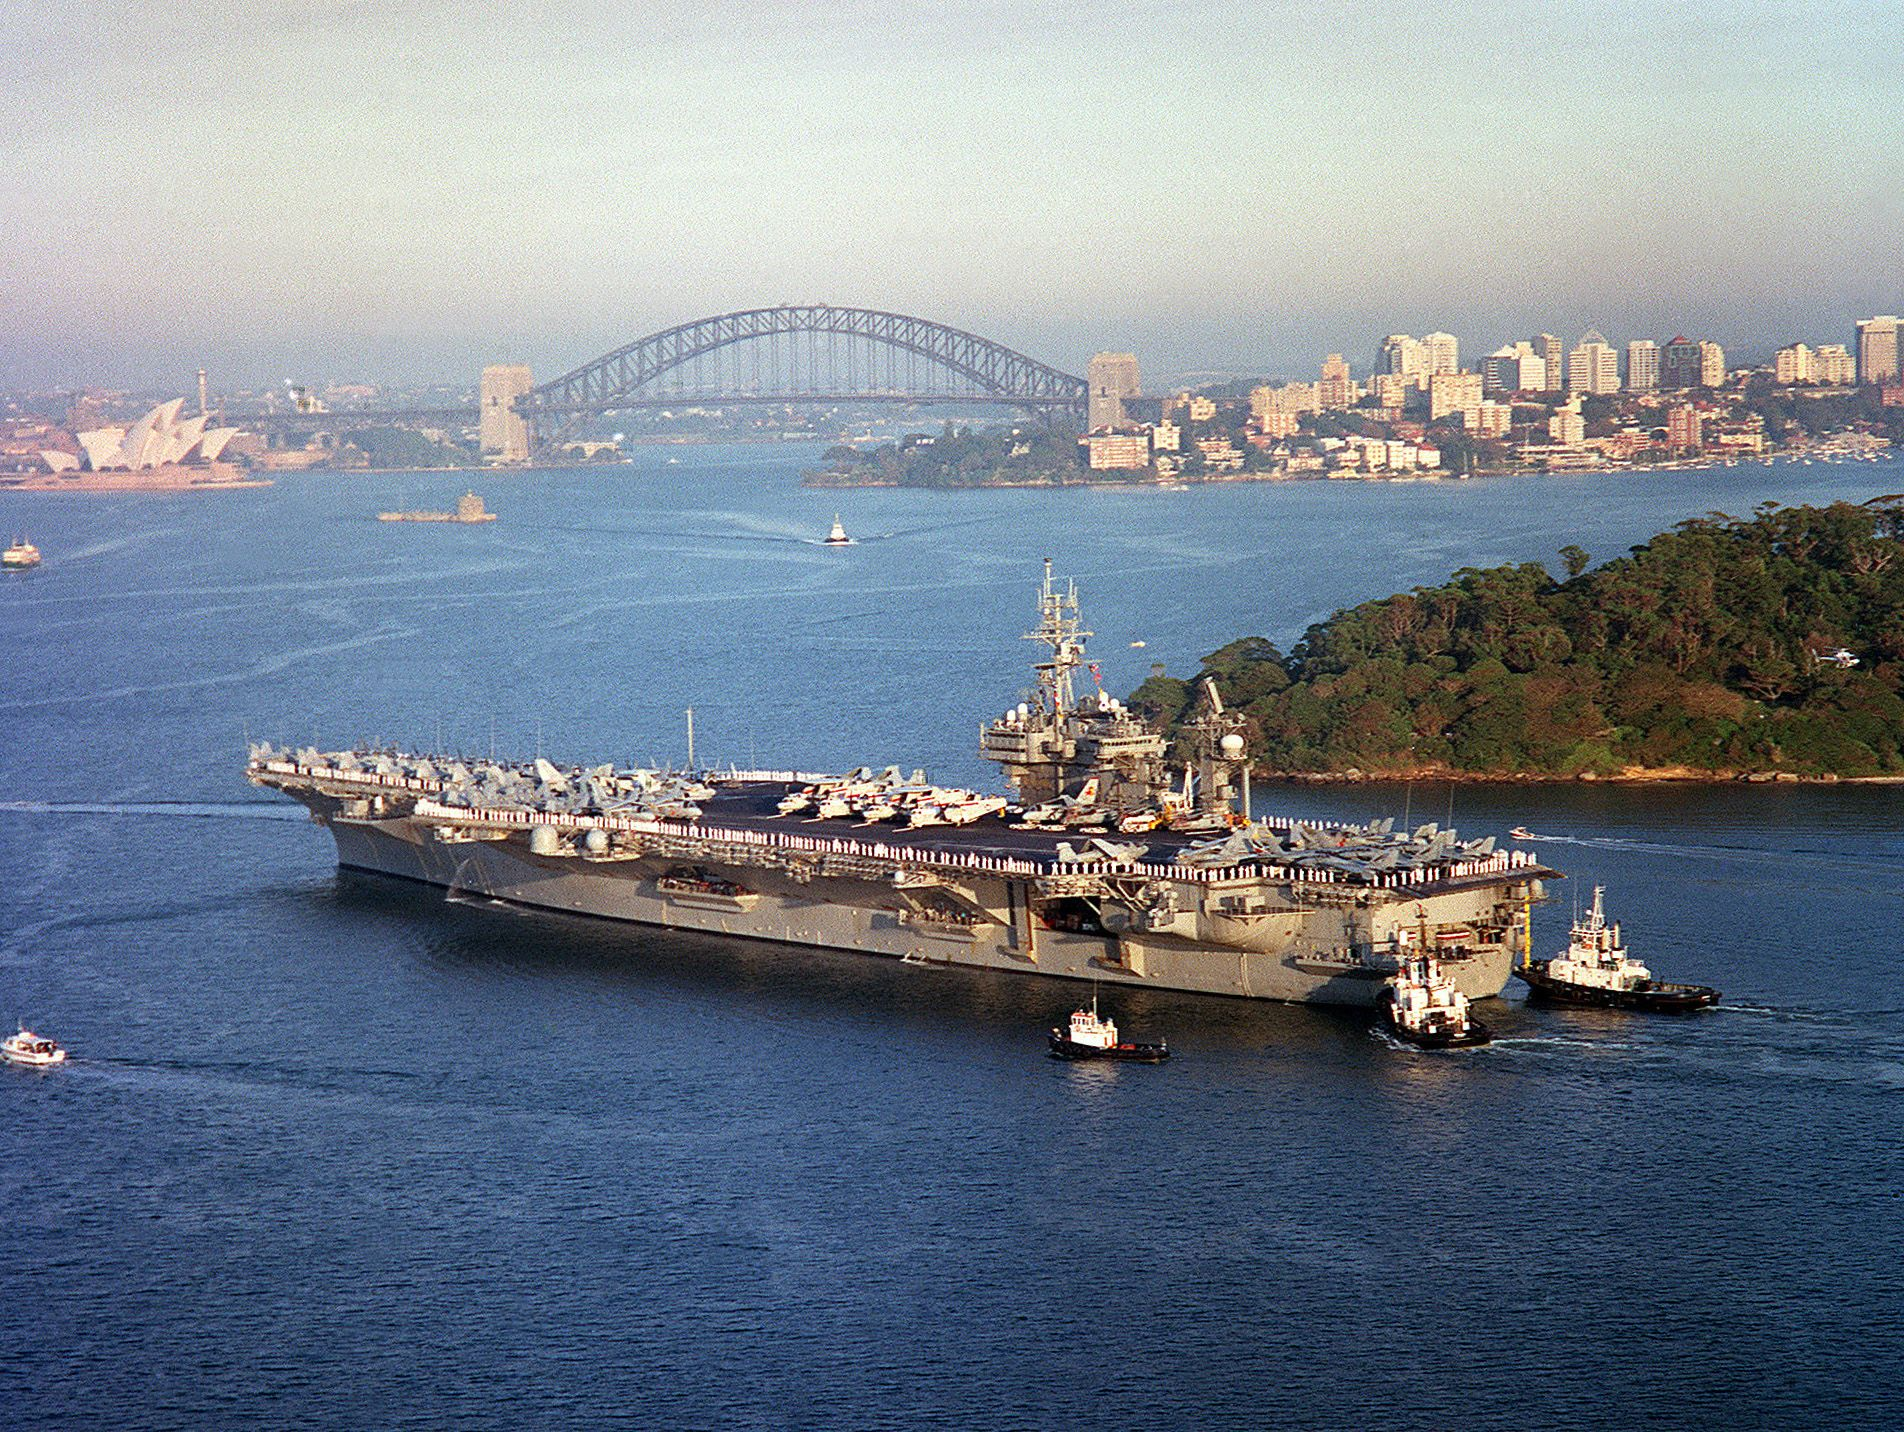 USS Constellation Sydney 2003 Marines and Sailors from OIF/OEF